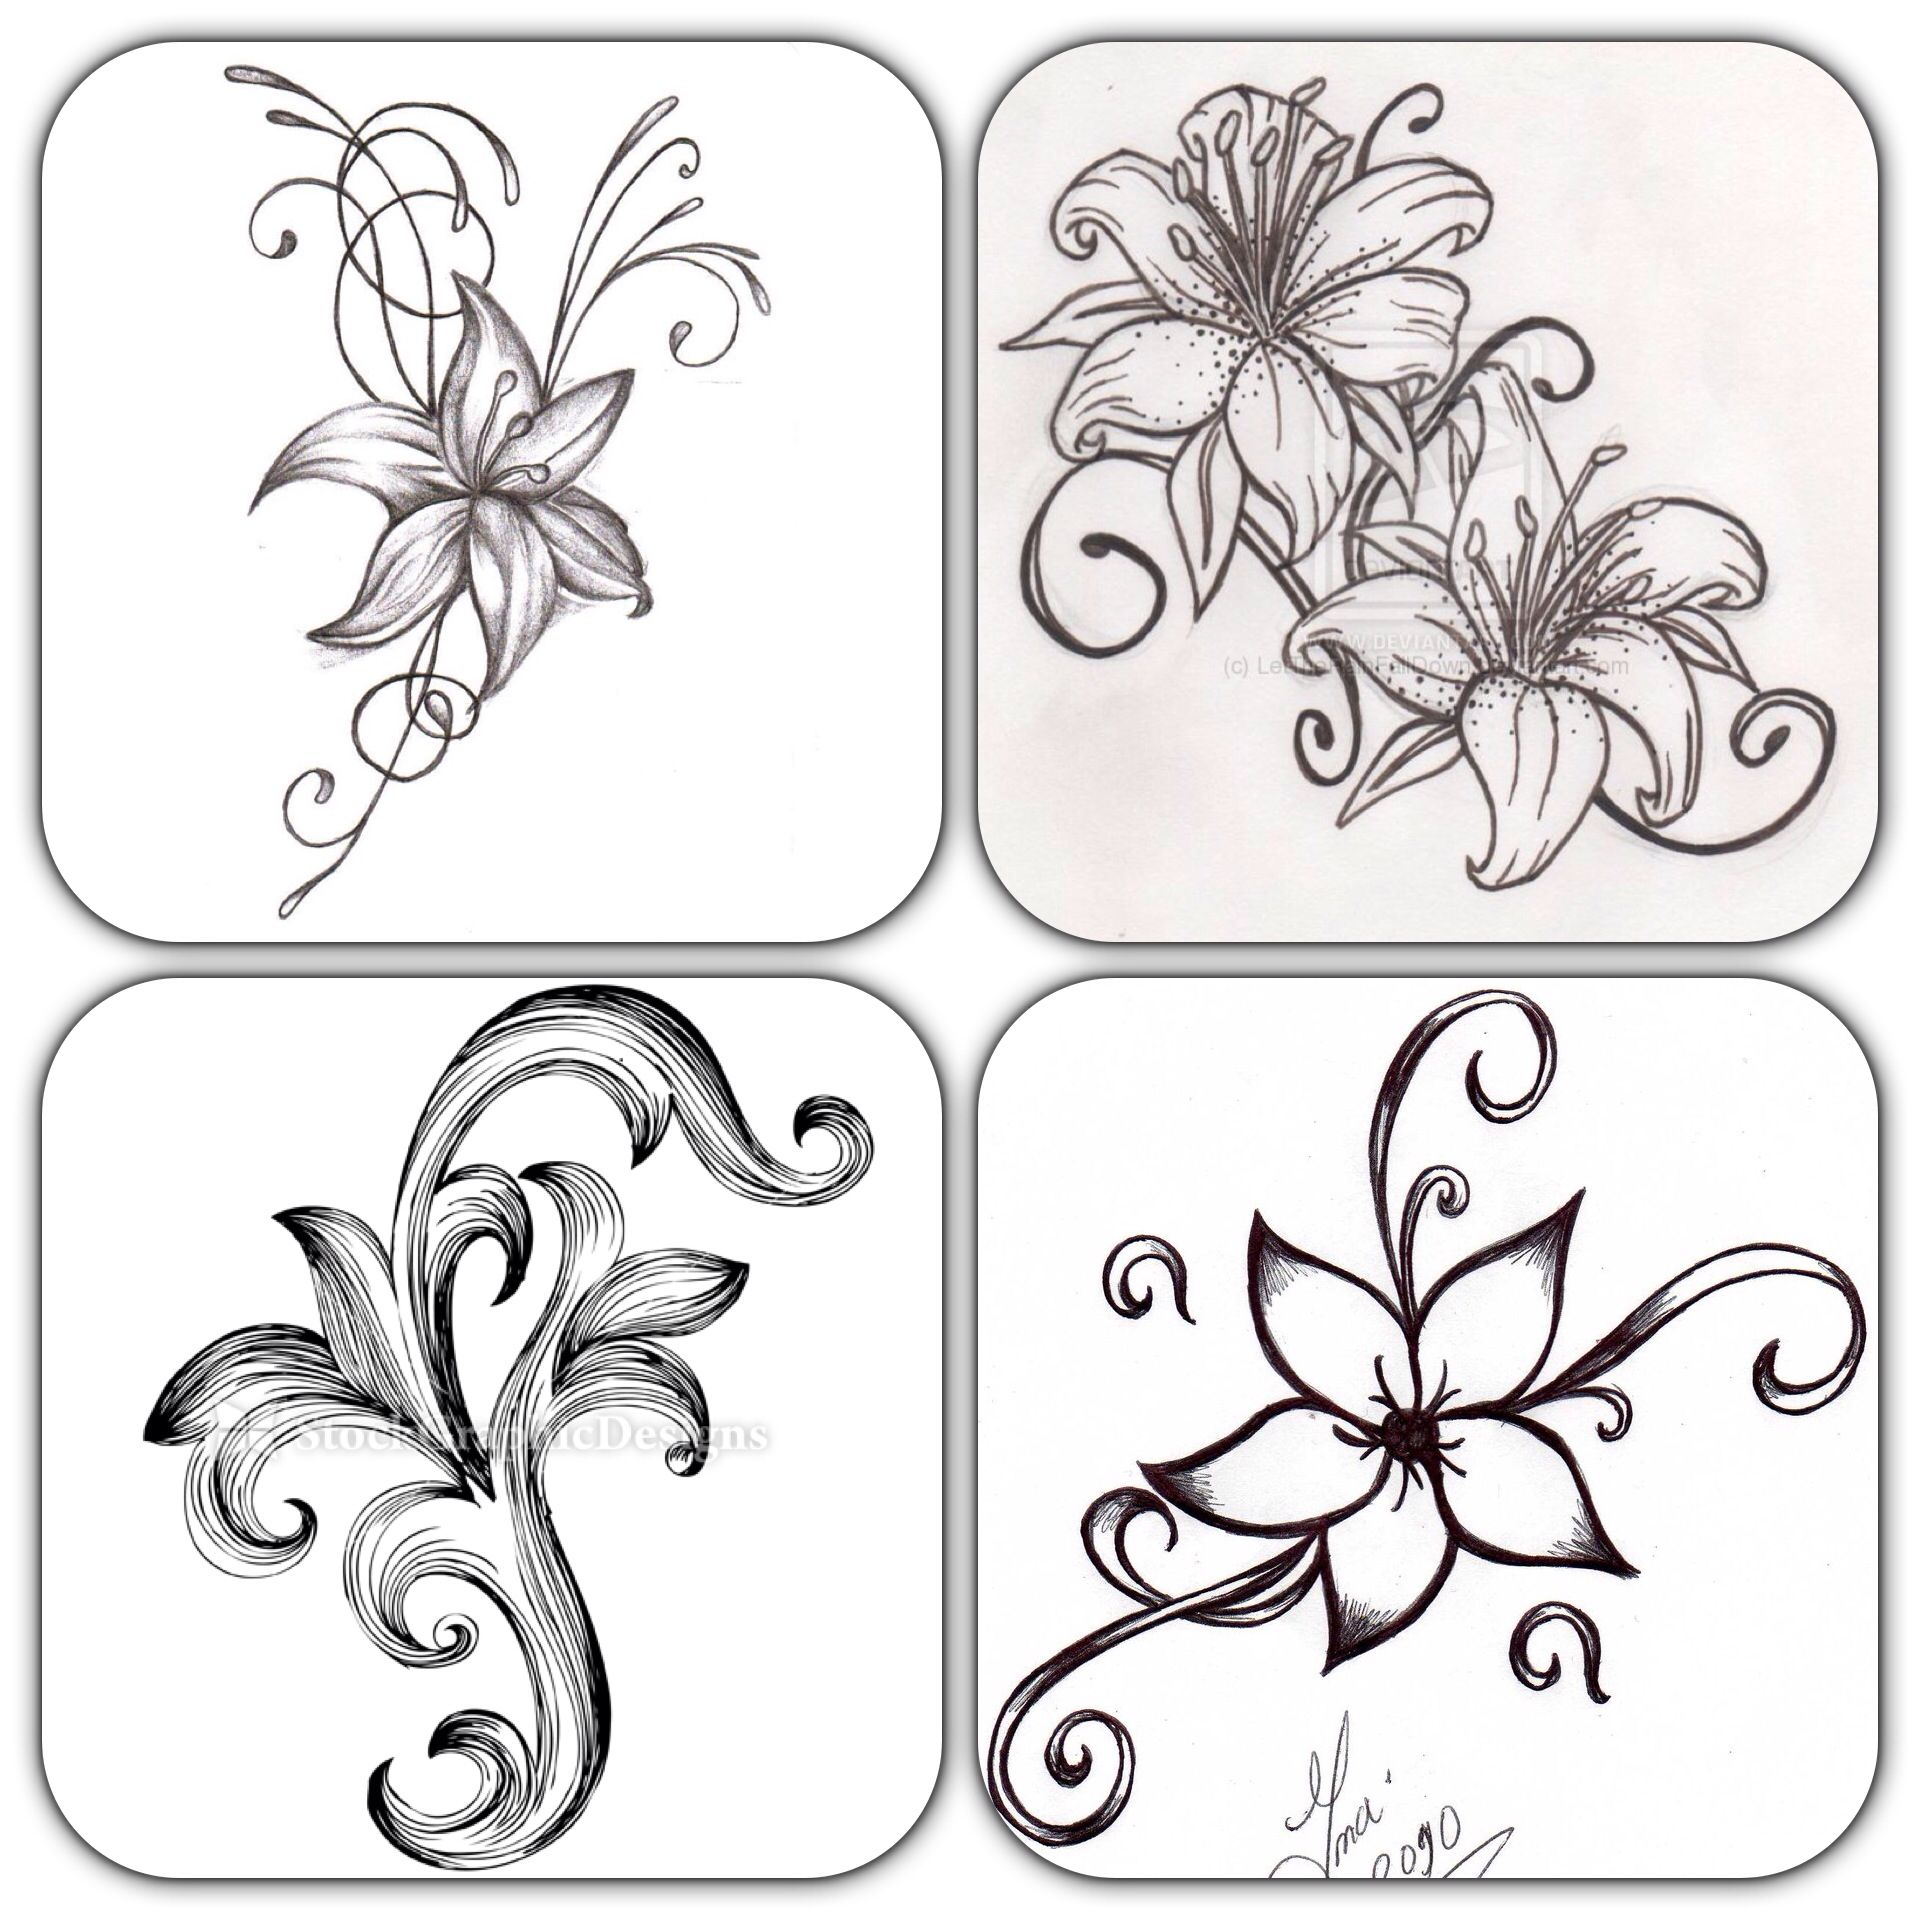 Flower Drawings Simple: Pin On SLEEVE PLANNING